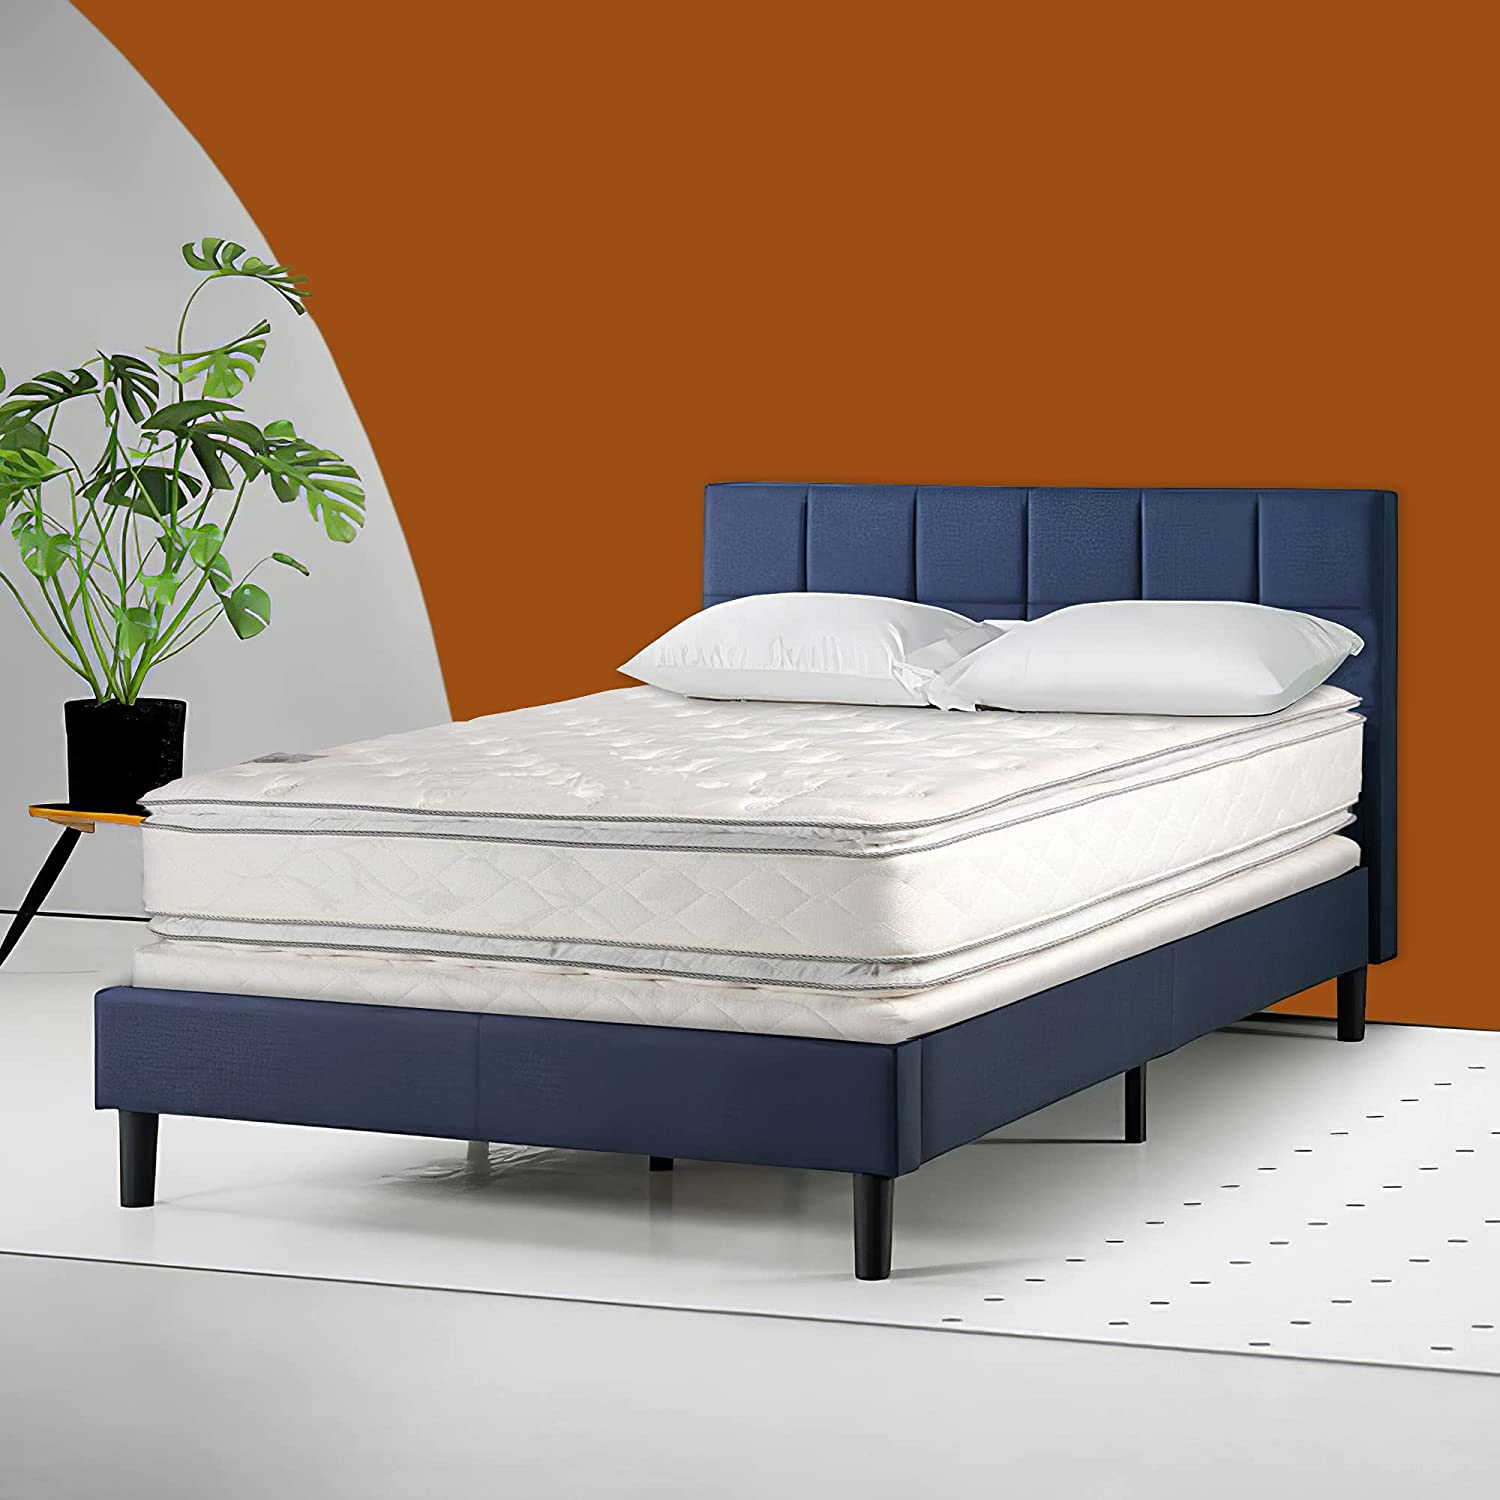 Max 68% OFF At the price Greaton Medium Plush Double sided Mattress Innerspring Pillowtop